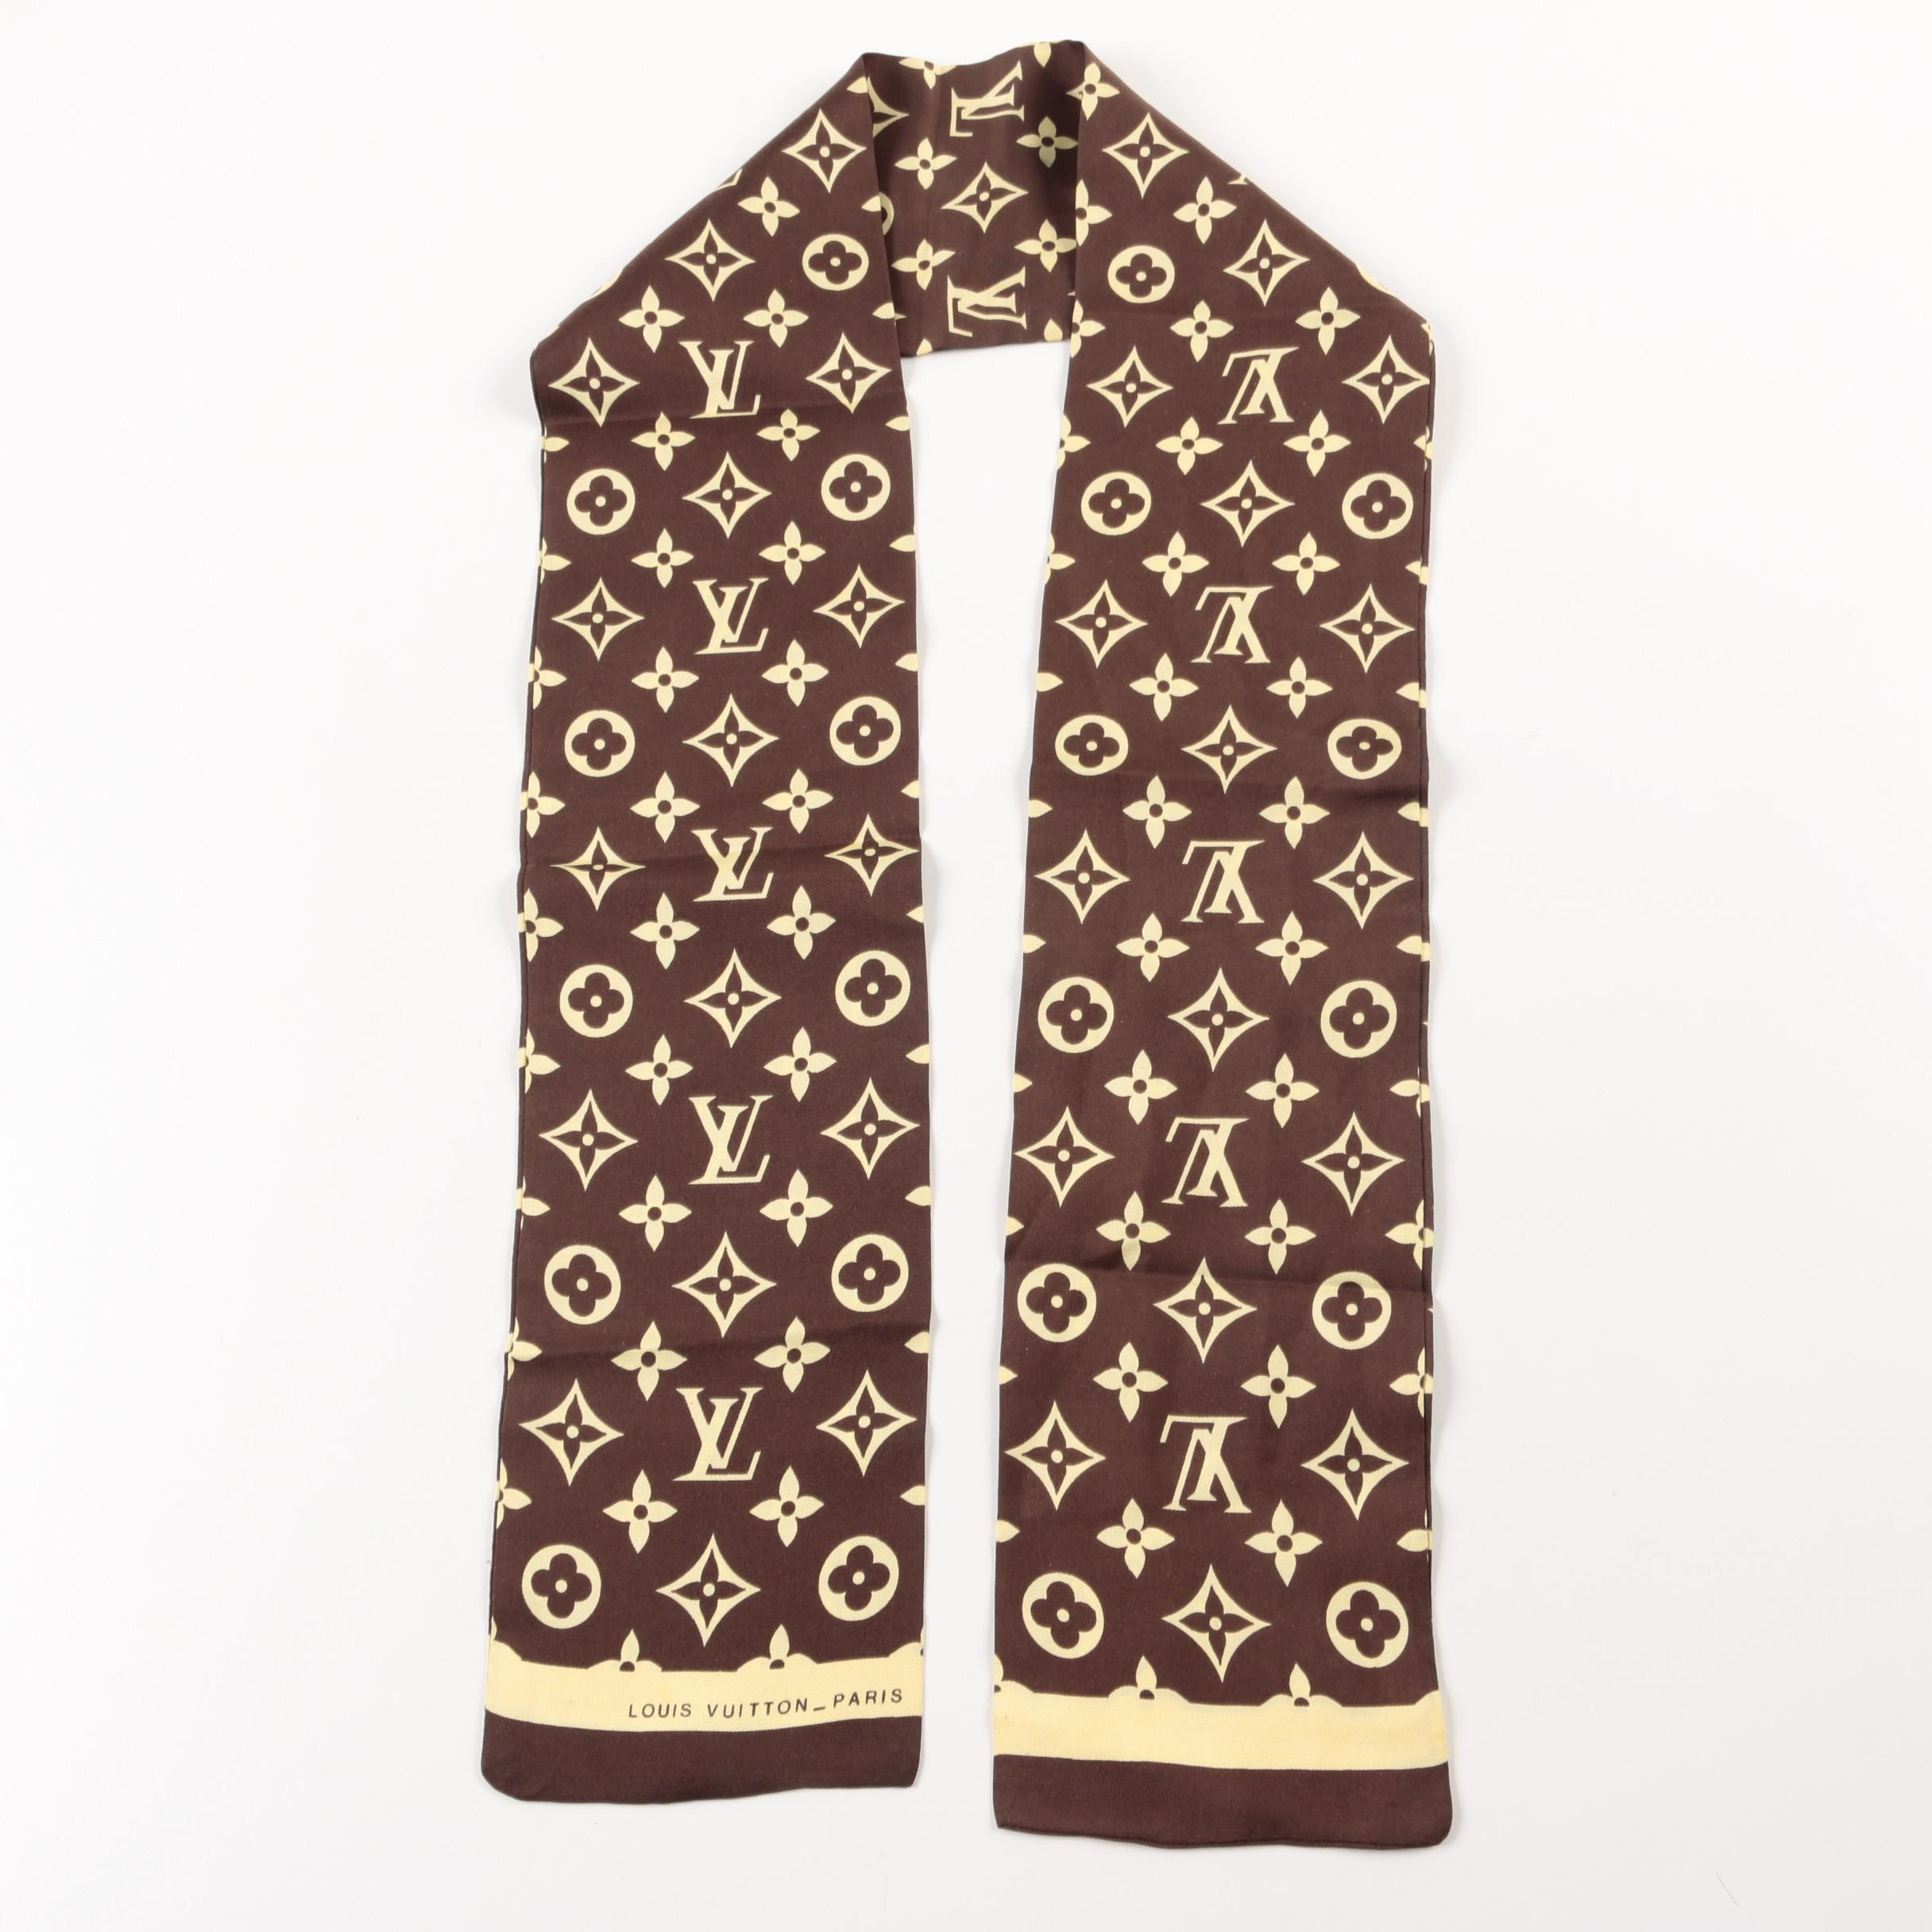 Louis Vuitton Monogram Scarf